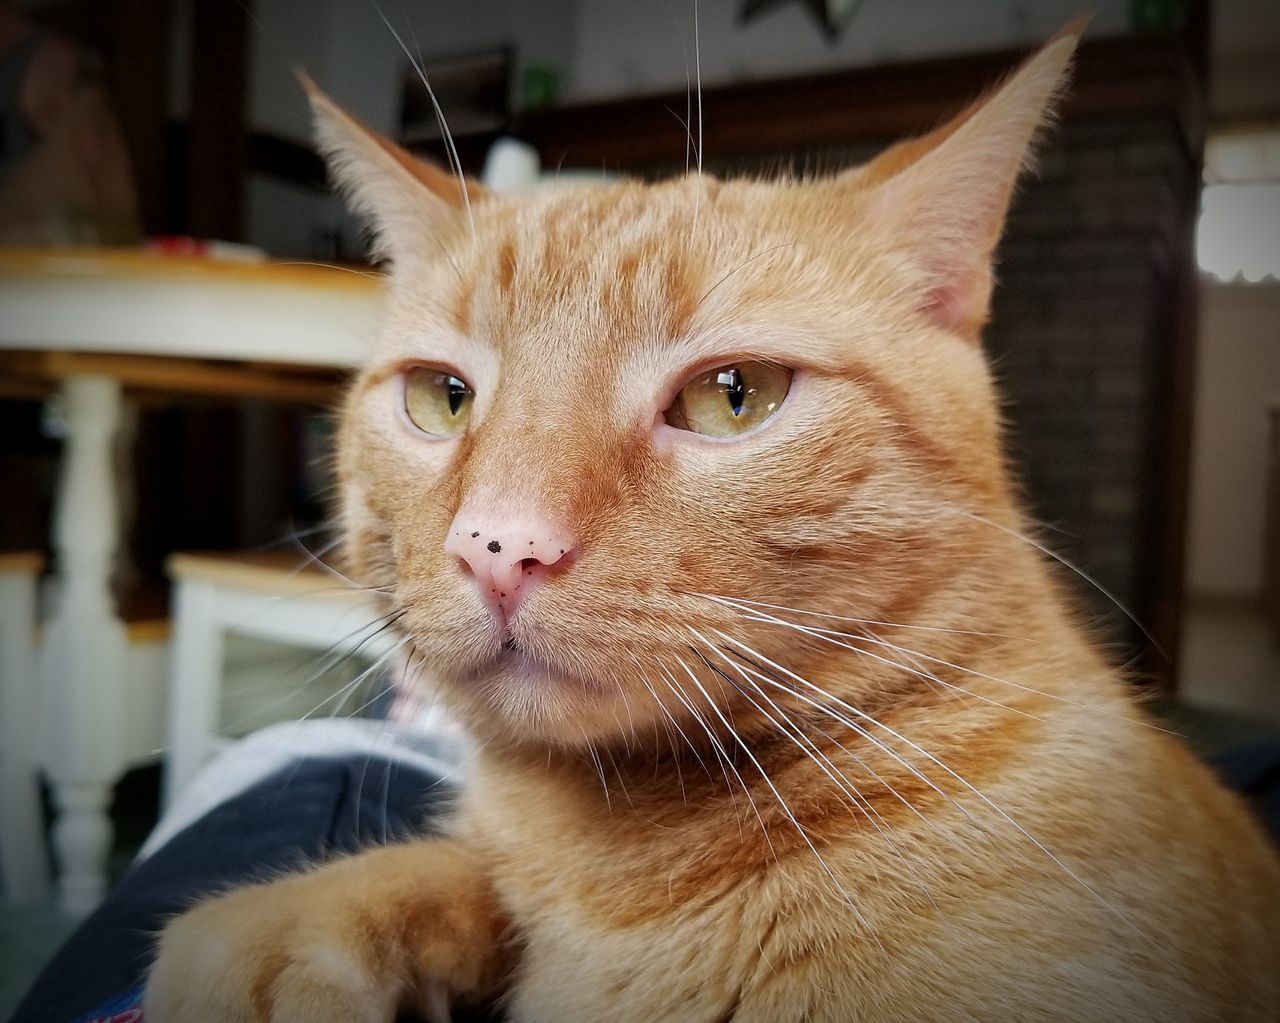 domestic cat, one animal, pets, animal themes, mammal, domestic animals, feline, whisker, indoors, cat, portrait, focus on foreground, close-up, looking at camera, no people, day, ginger cat